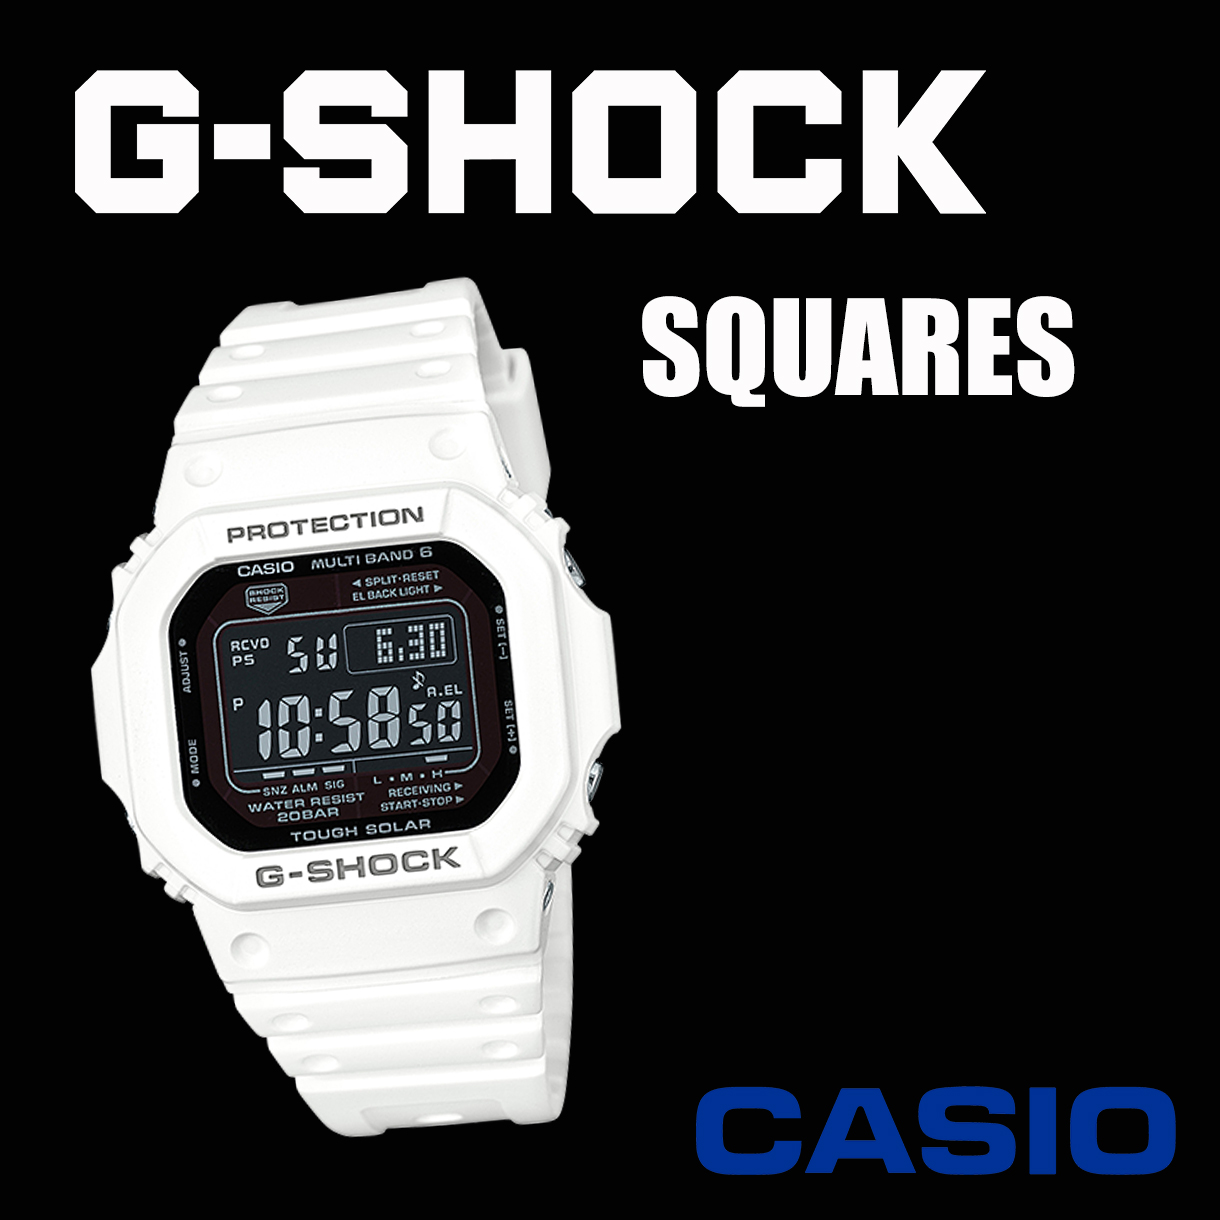 97de359fc No doubt Casio had a winner when they created the